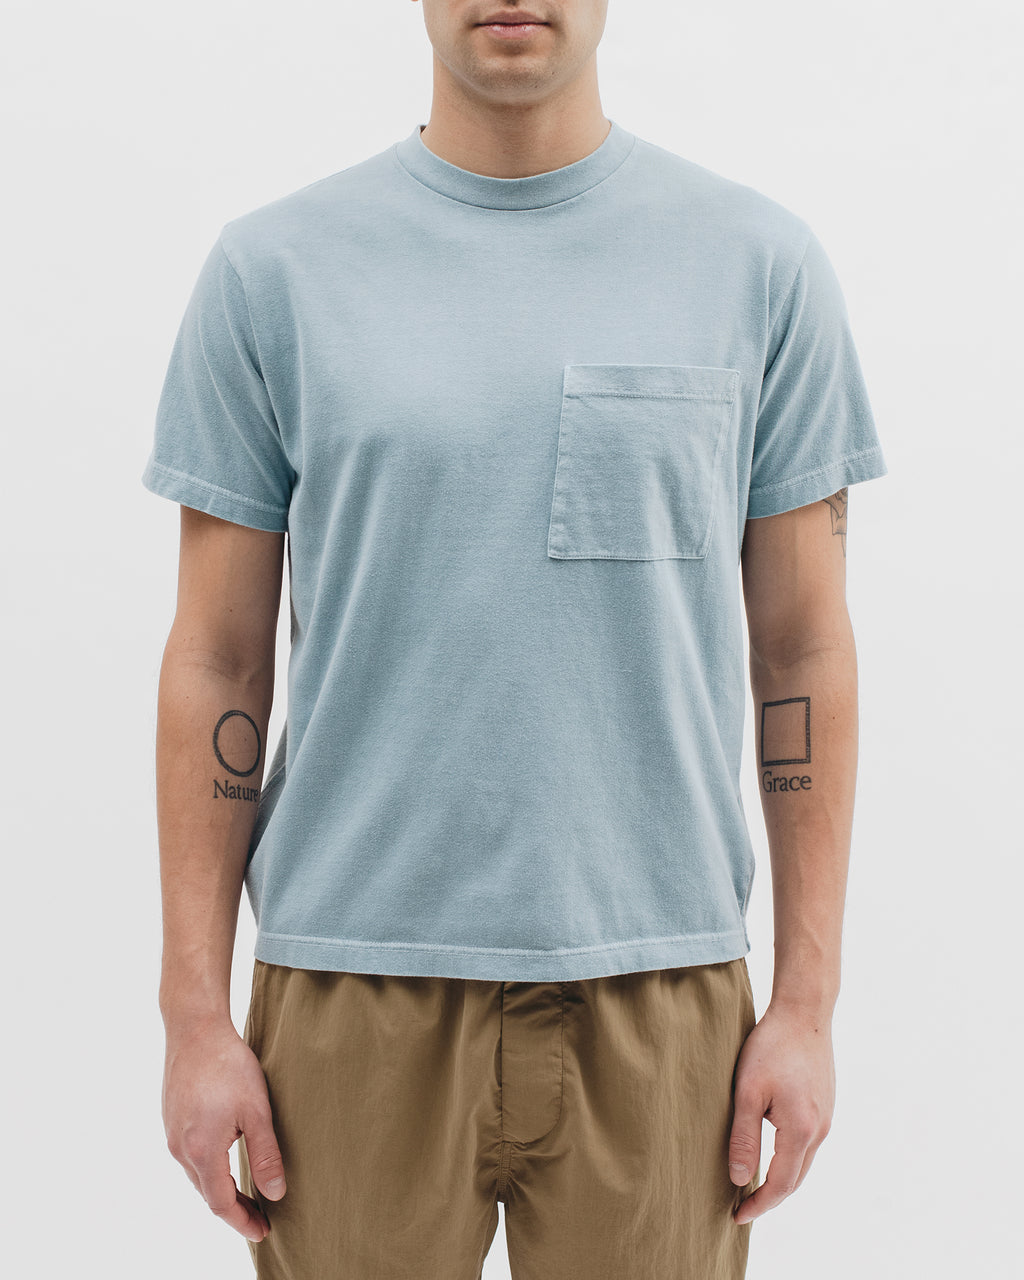 Natural Dyed Block S/S Jersey - Dusty Teal - [product _vendor]